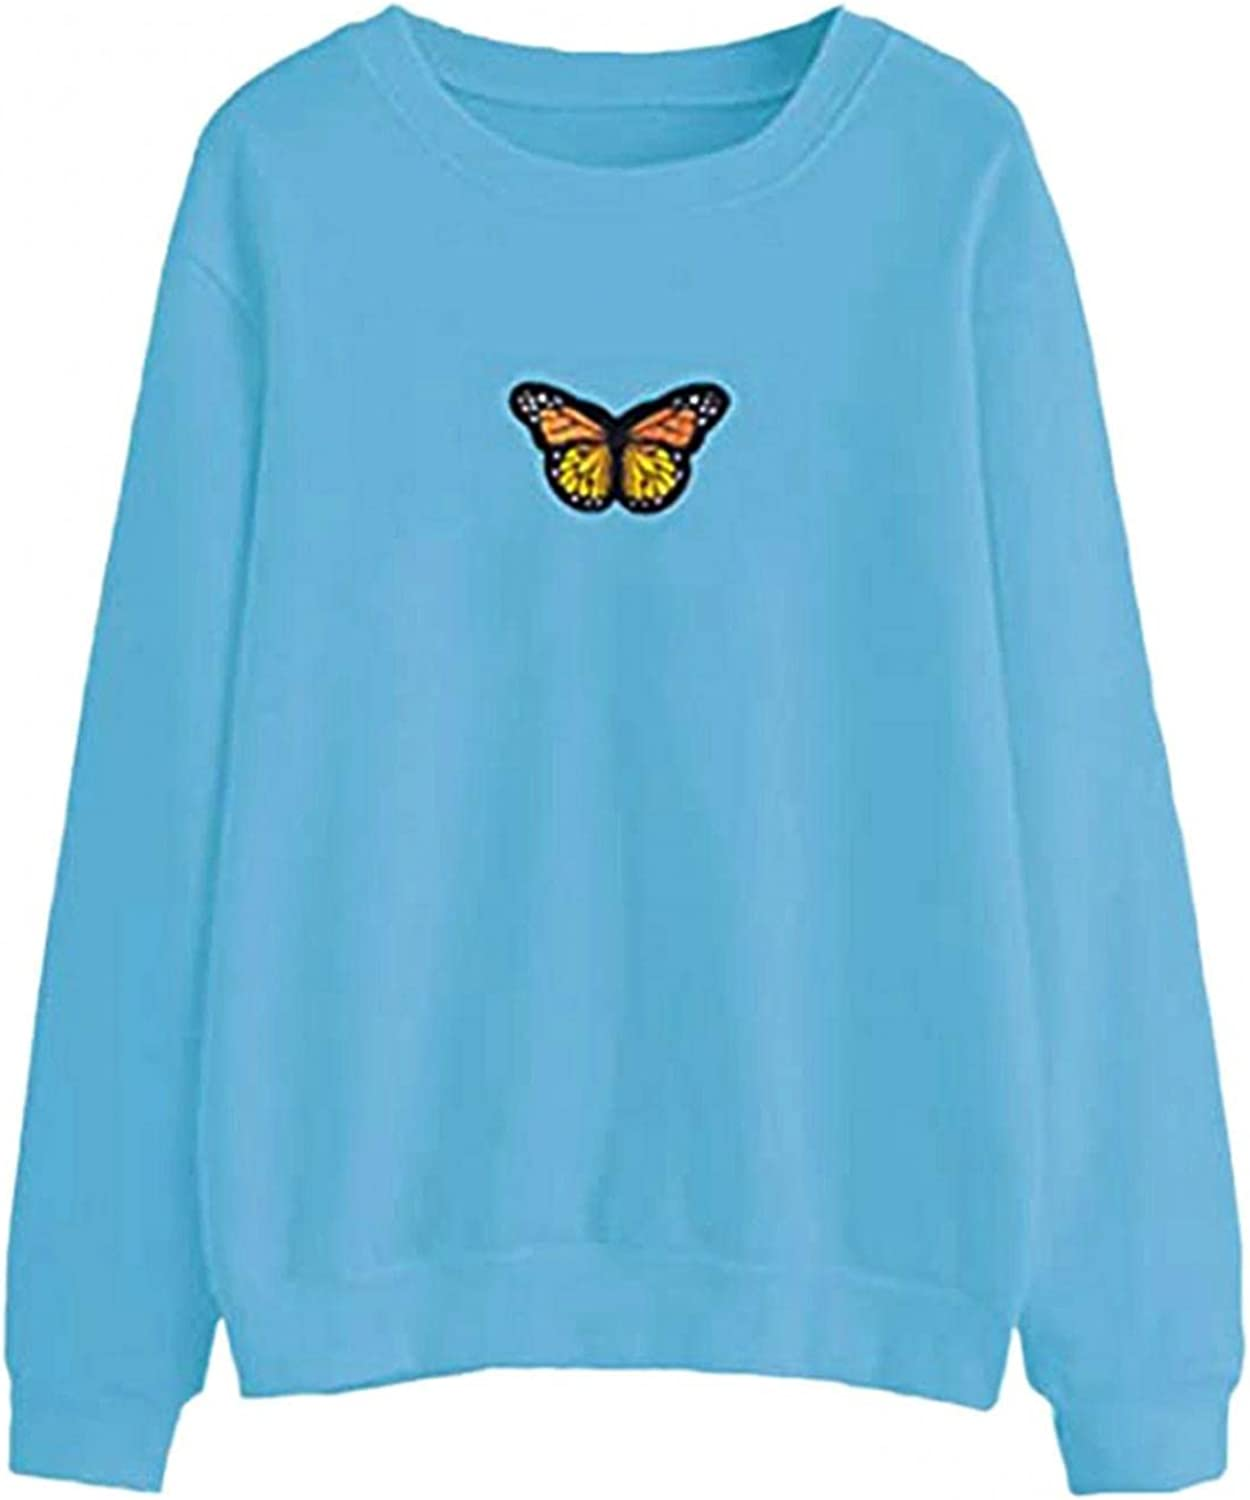 UOCUFY Womens Hoodies, Womens Casual Sweatshirts Long Sleeve Cute Printing Plus Size Pullover Hoodies Autumn and Winter